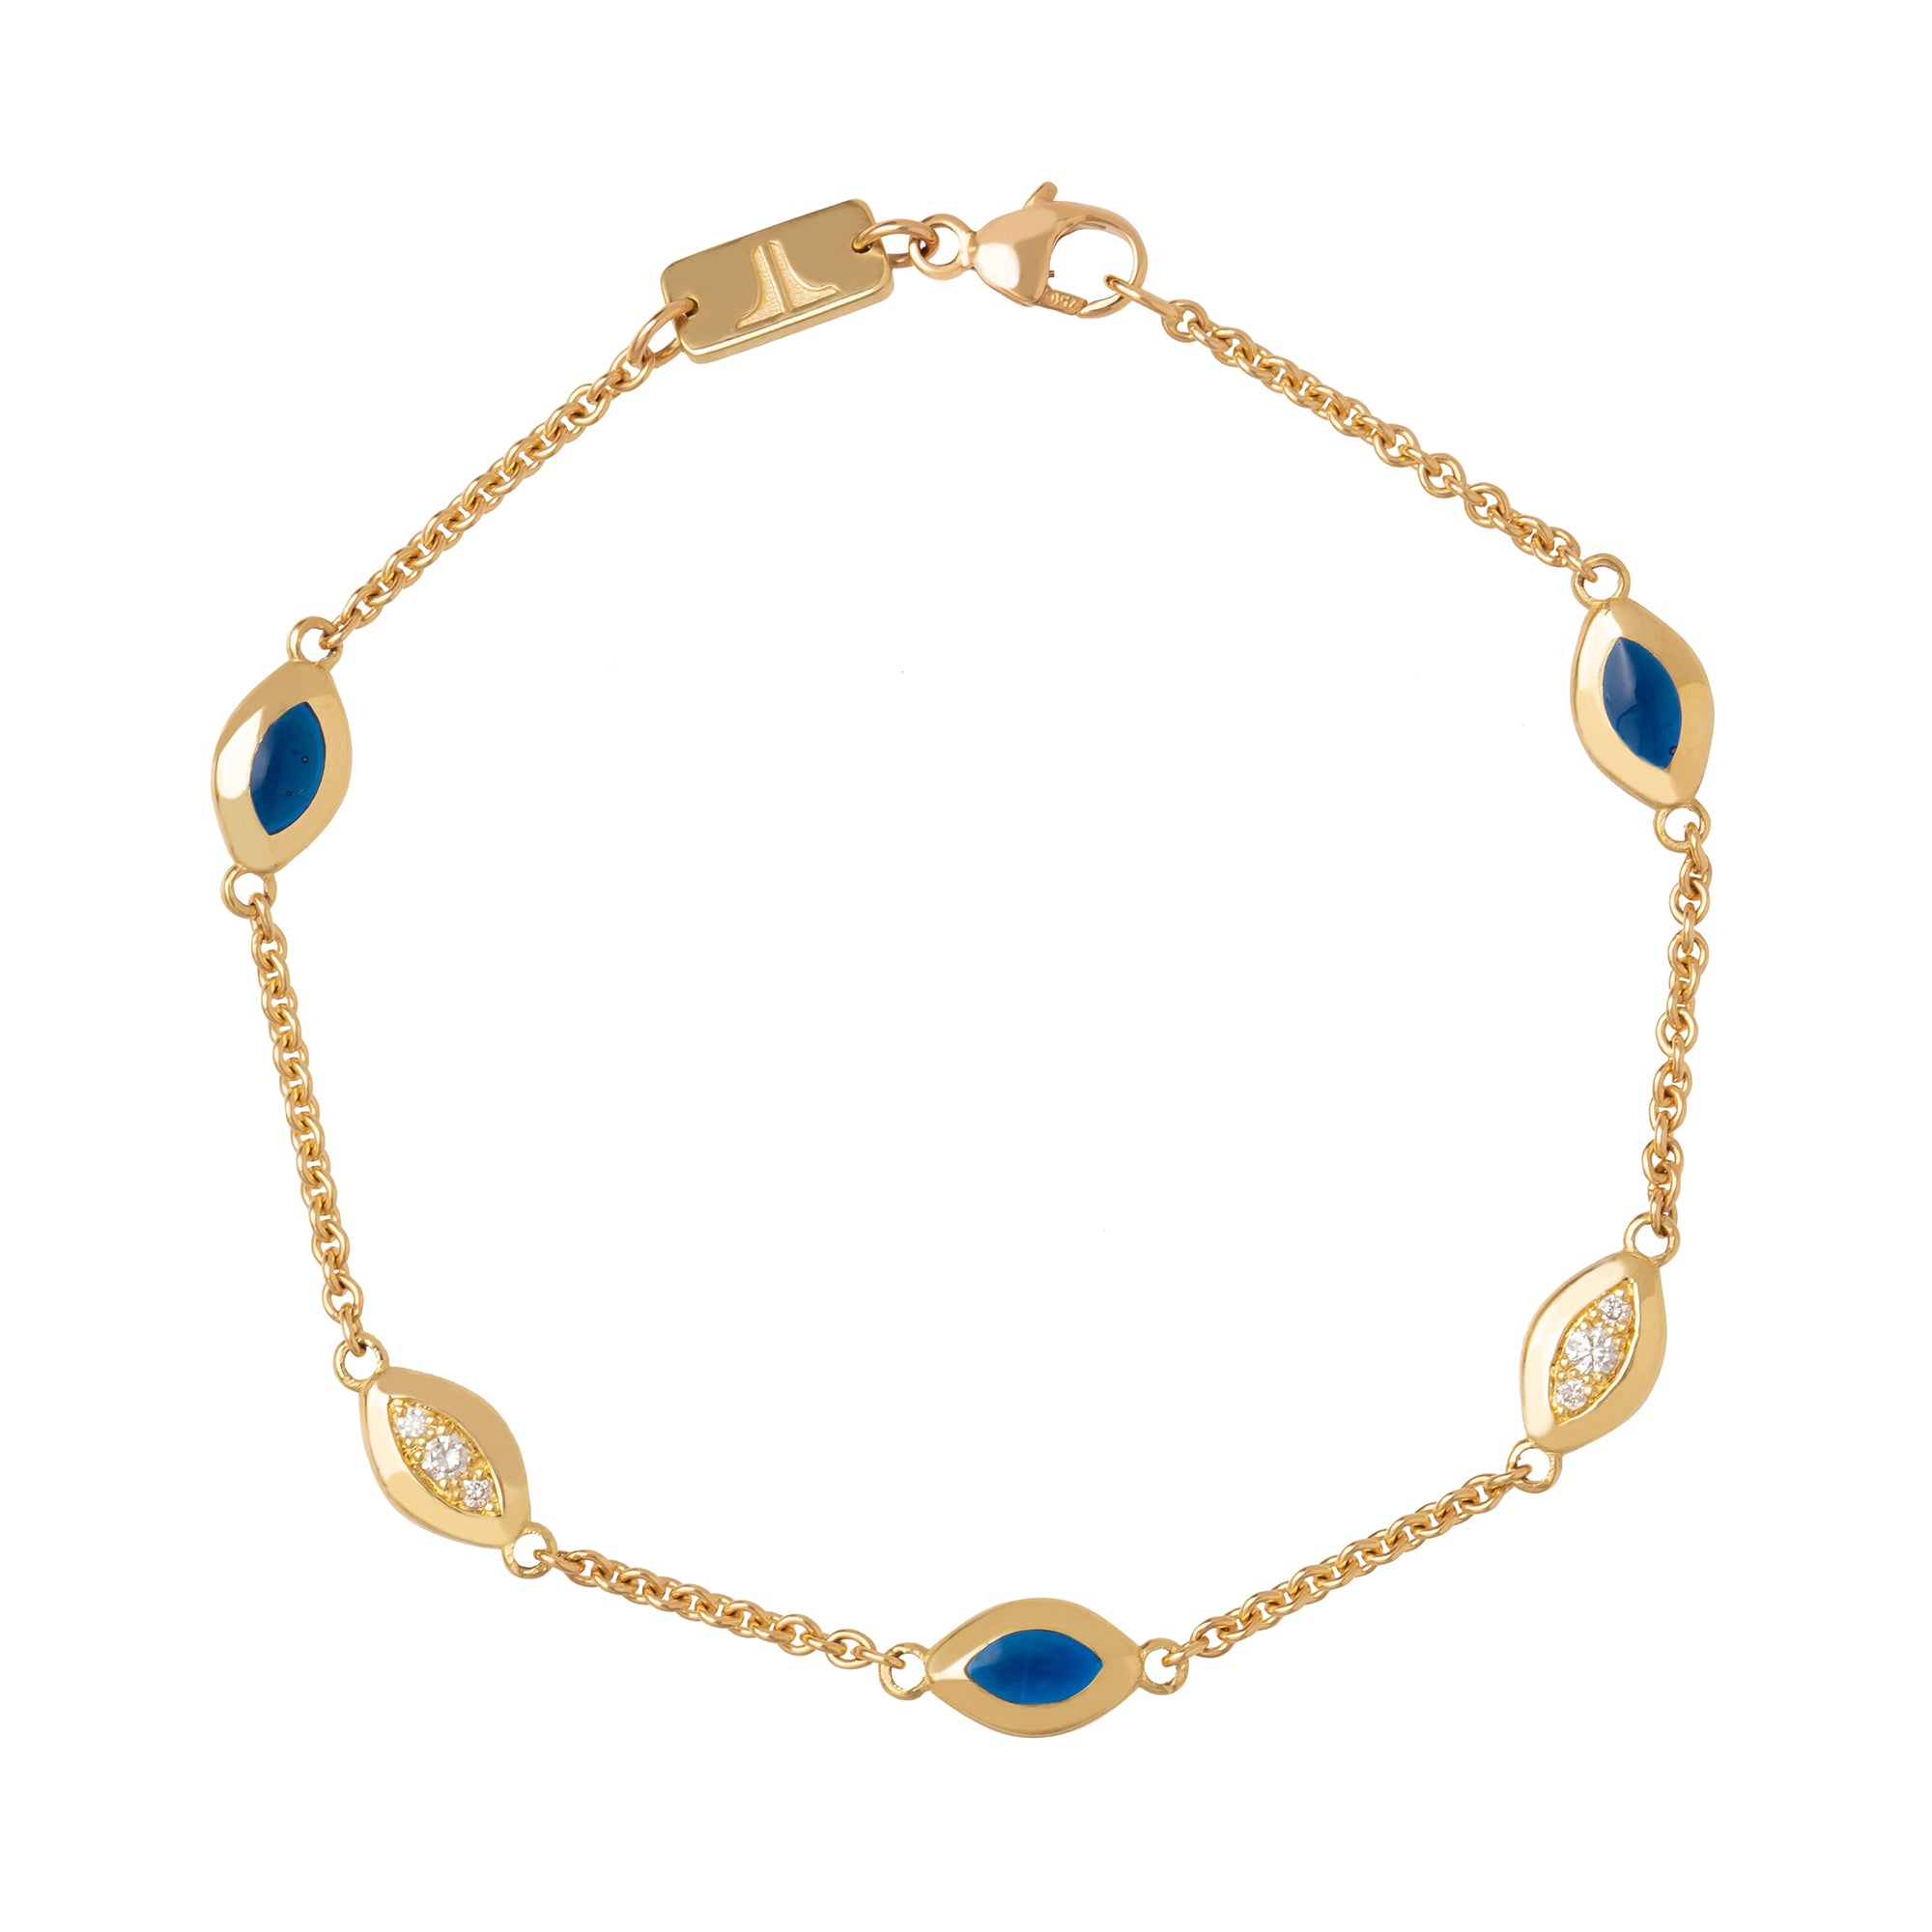 Five Link Bracelet with Diamonds and Blue Enamel - ANDY LIF Jewelry - Bracelets | Broken English Jewelry